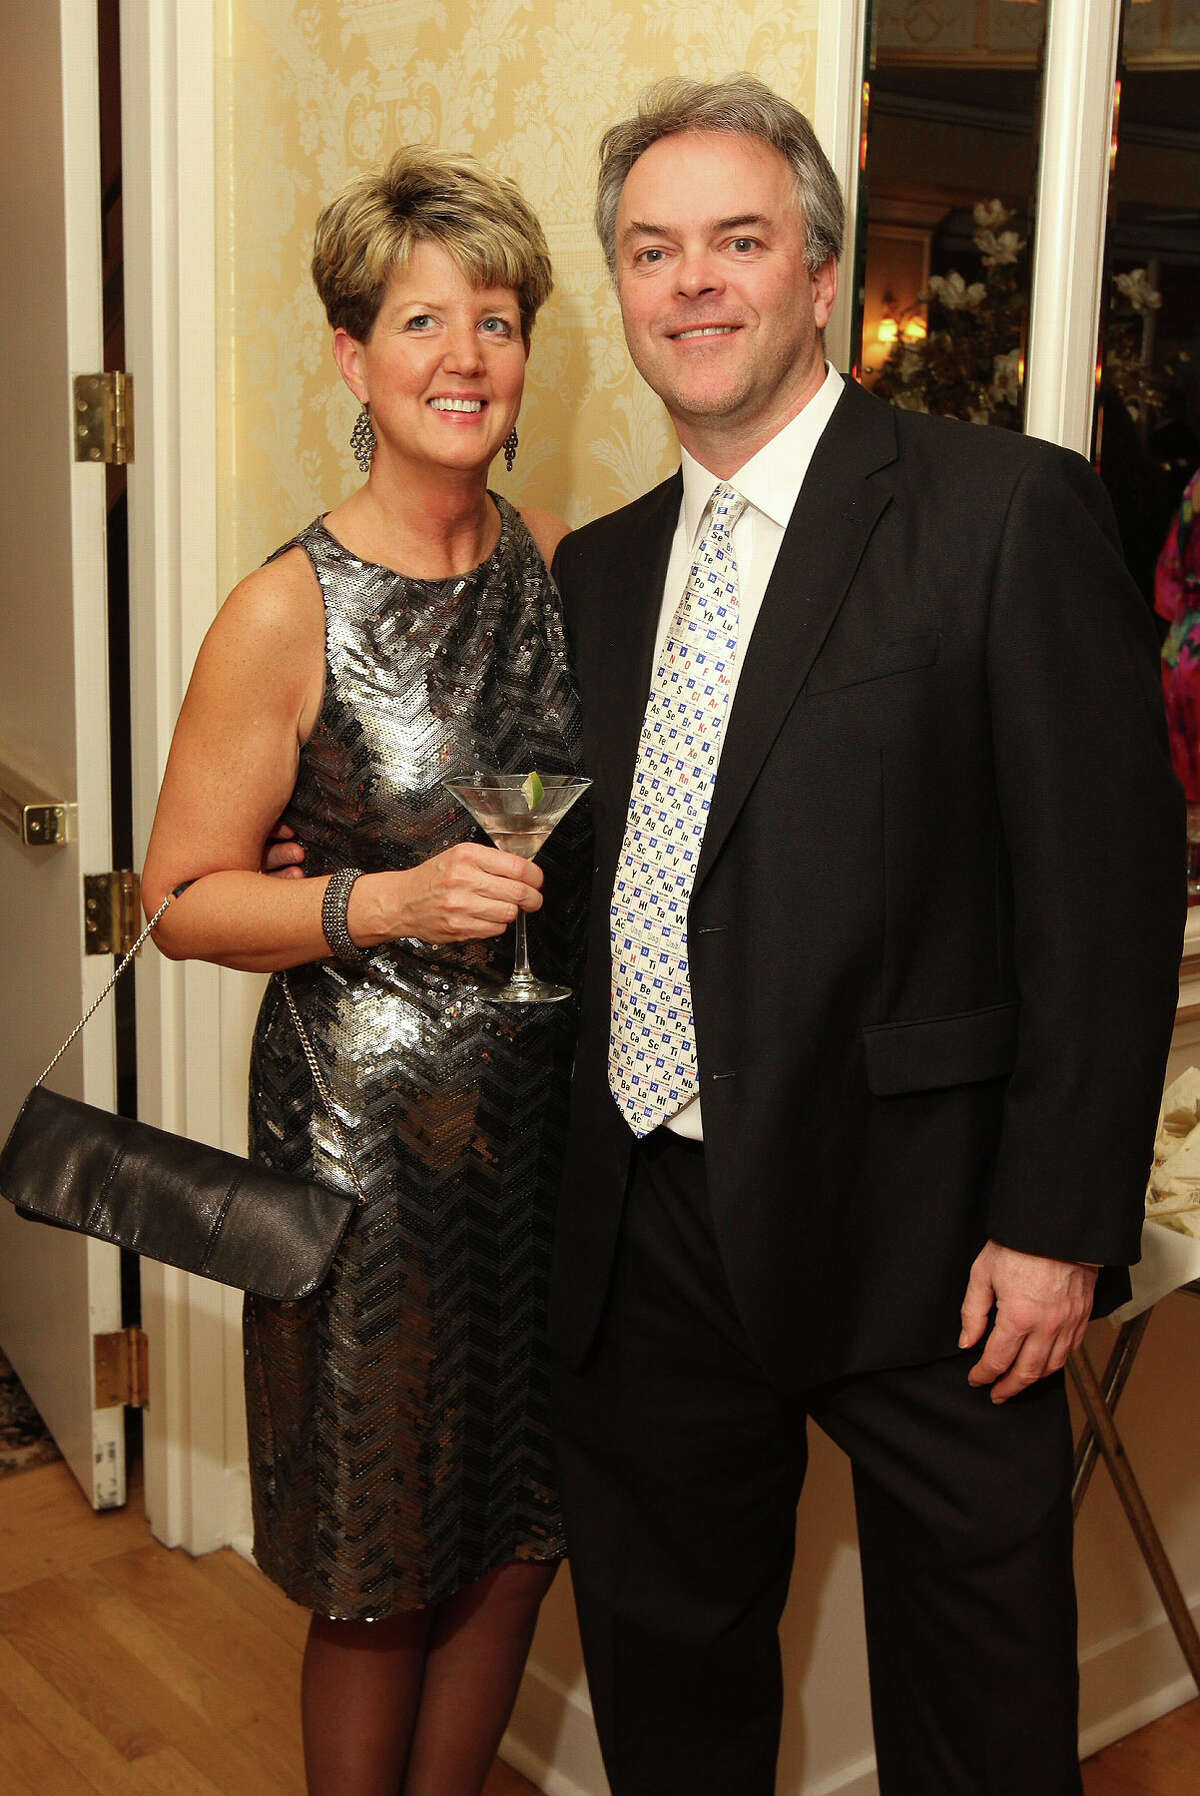 Were you Seen at the 8th Annual Last Night New Year's Eve Gala to benefit St. Peter's Hospital Foundation at Franklin Plaza in Troy on Monday, Dec. 31, 2012?